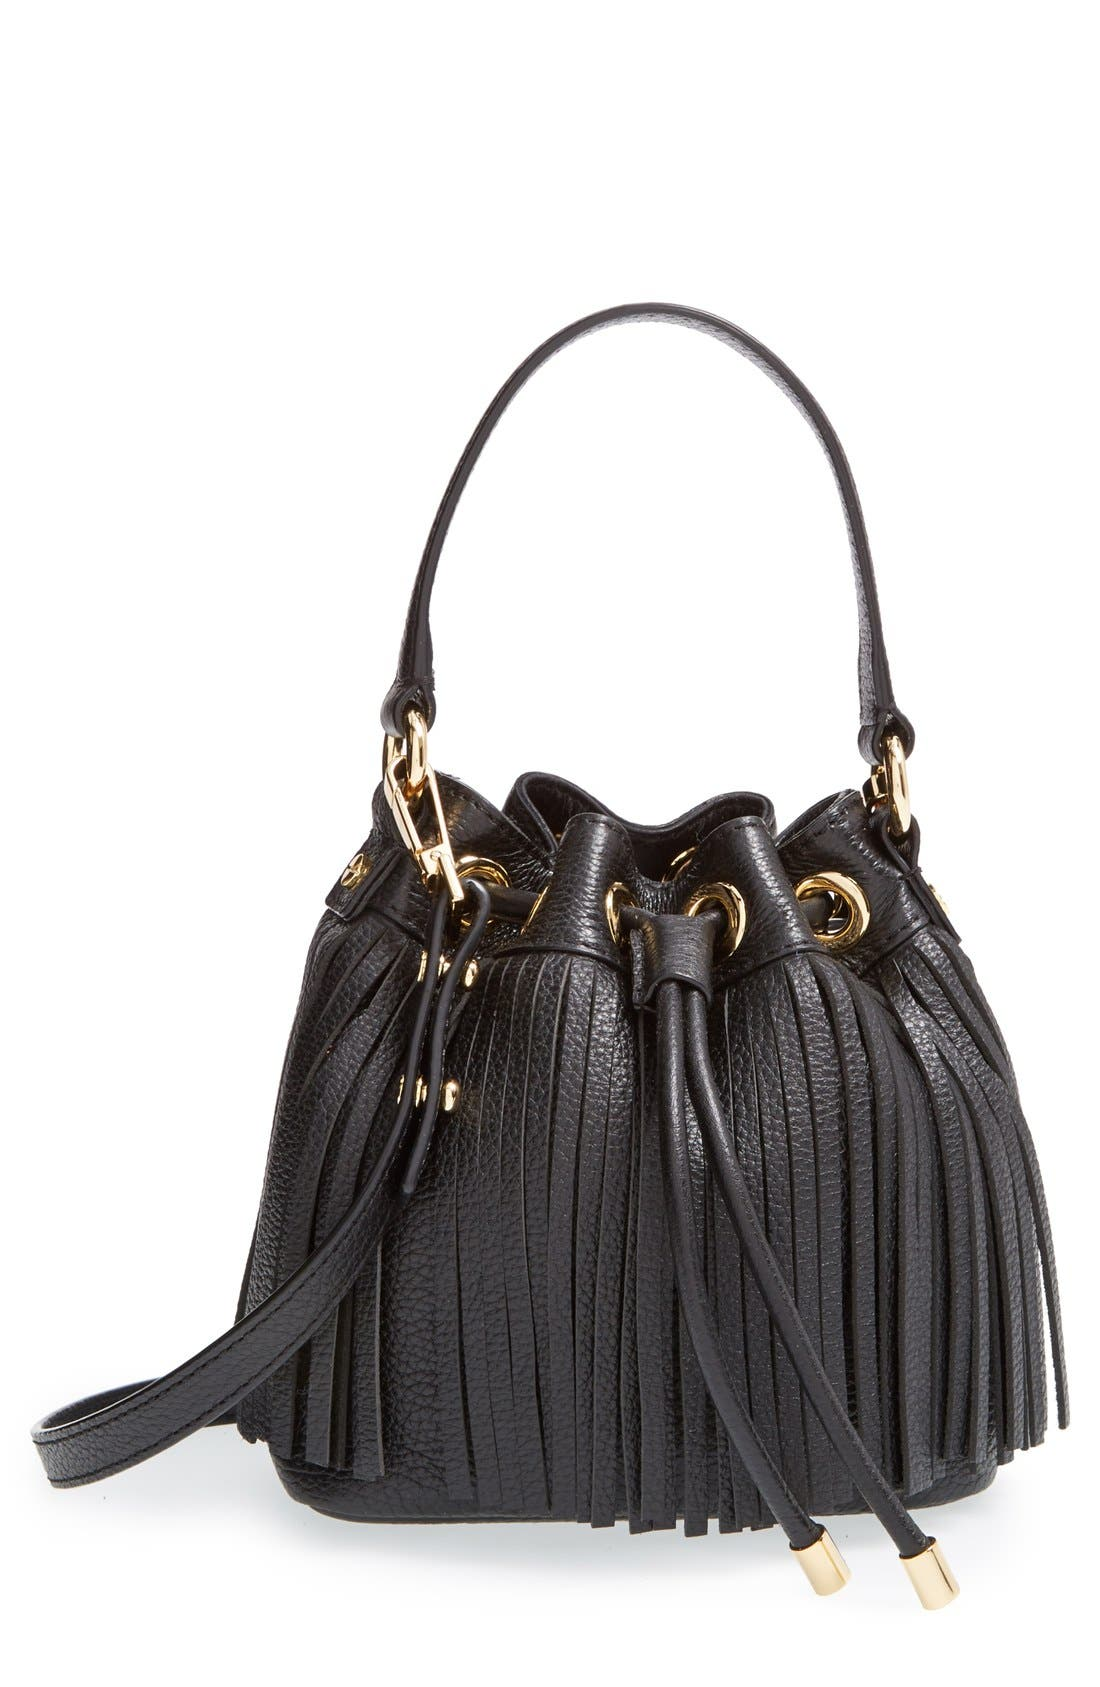 MILLY 'Small Essex' Fringed Leather Bucket Bag, Main, color, 001